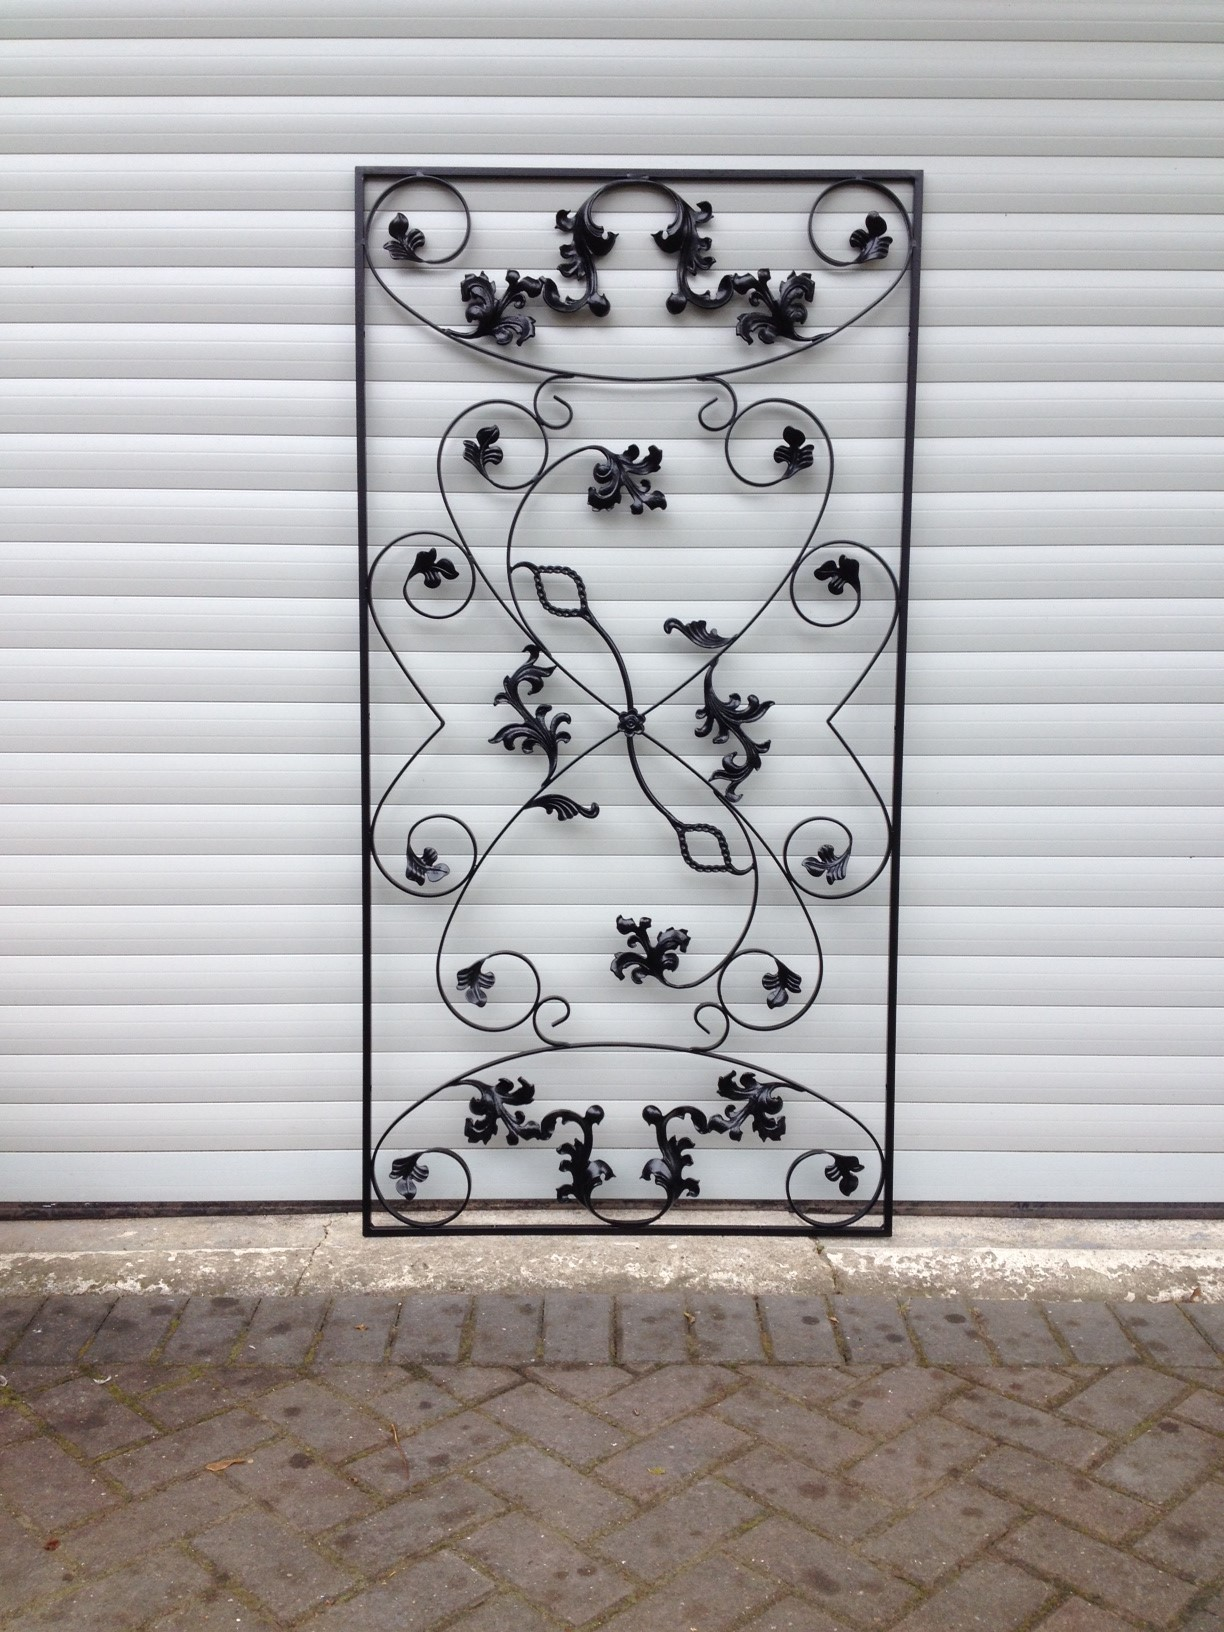 Decorative Wrought Iron Grilles From Qsec In Leeds